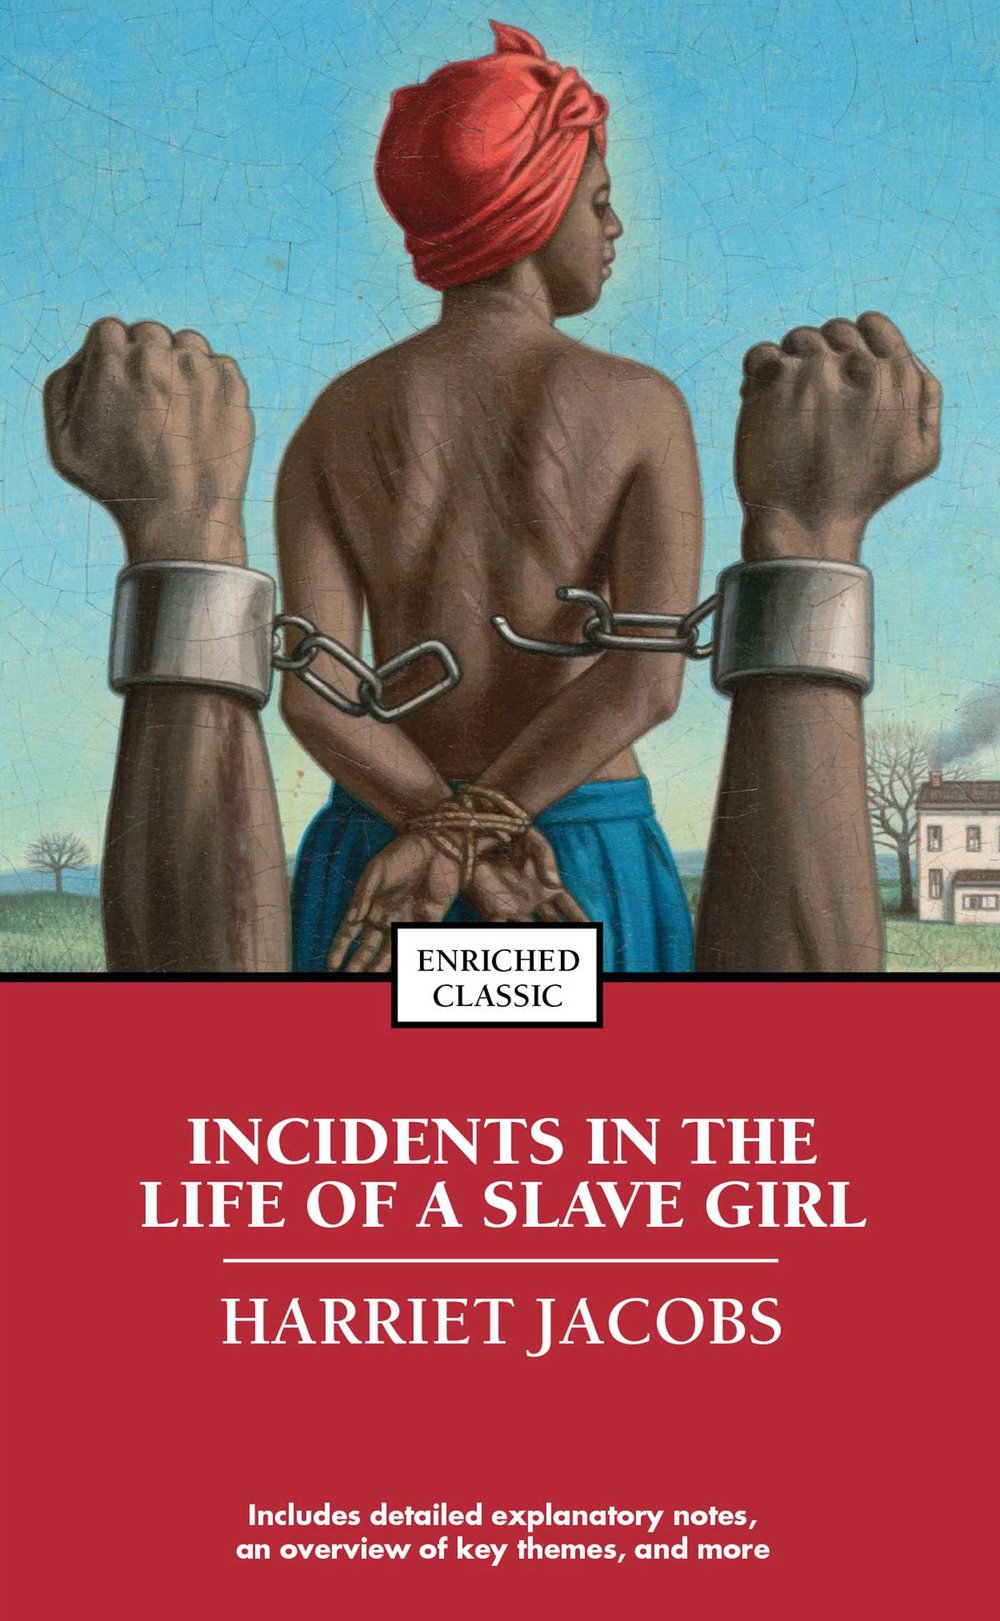 Incidents in the Life of a Slave Girl, by Harriet Jacobs